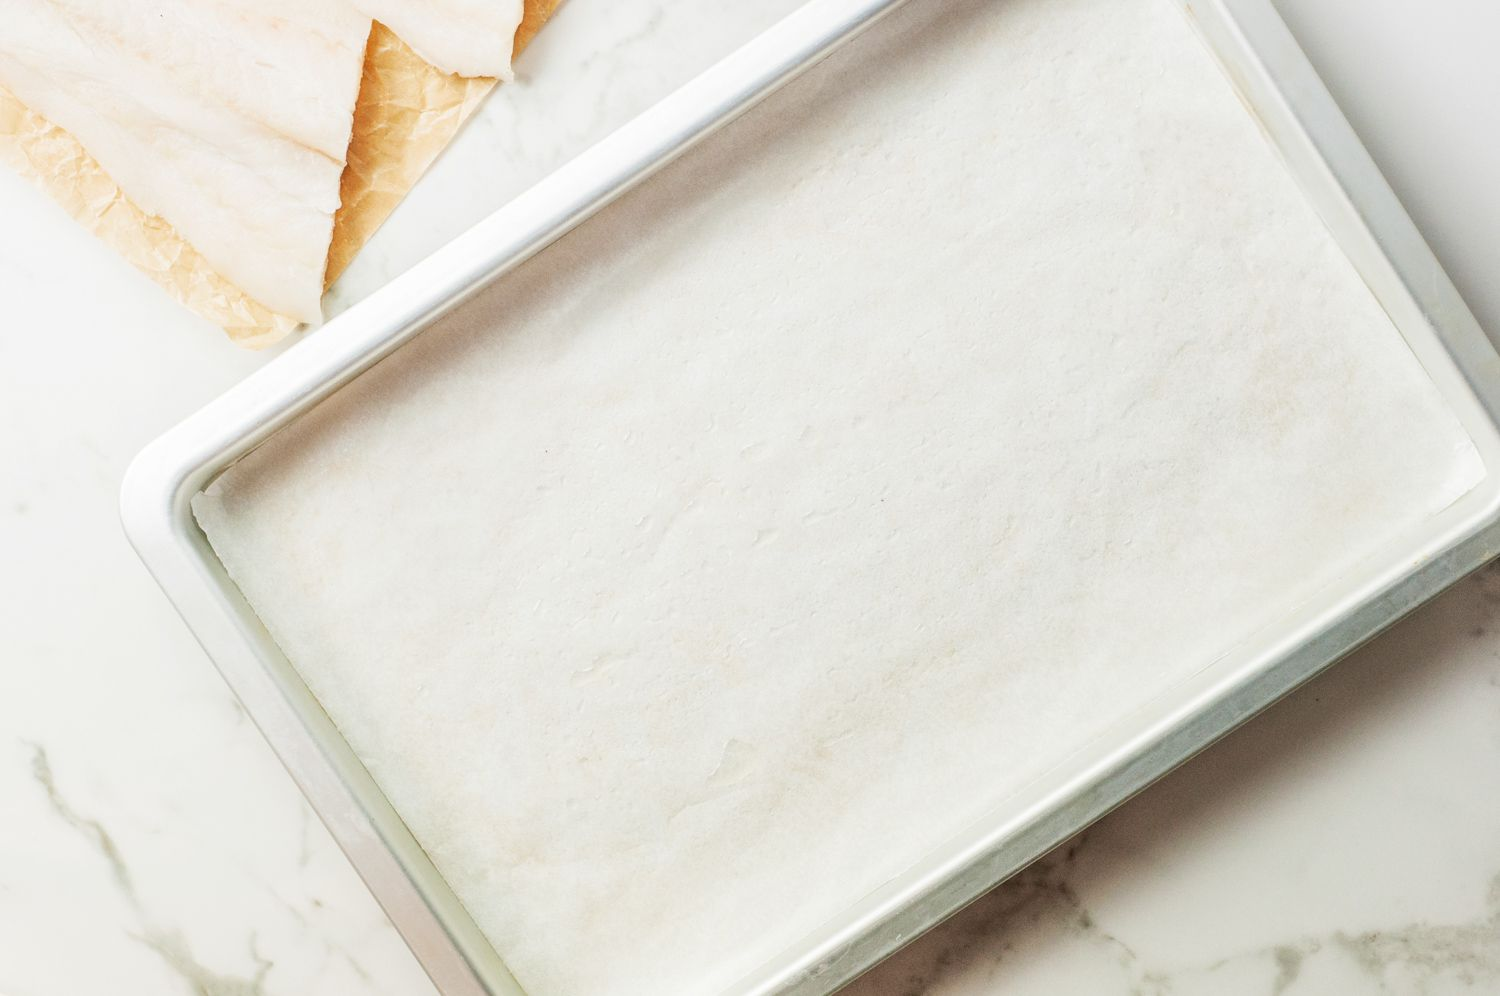 Rimmed baking sheet lined with parchment